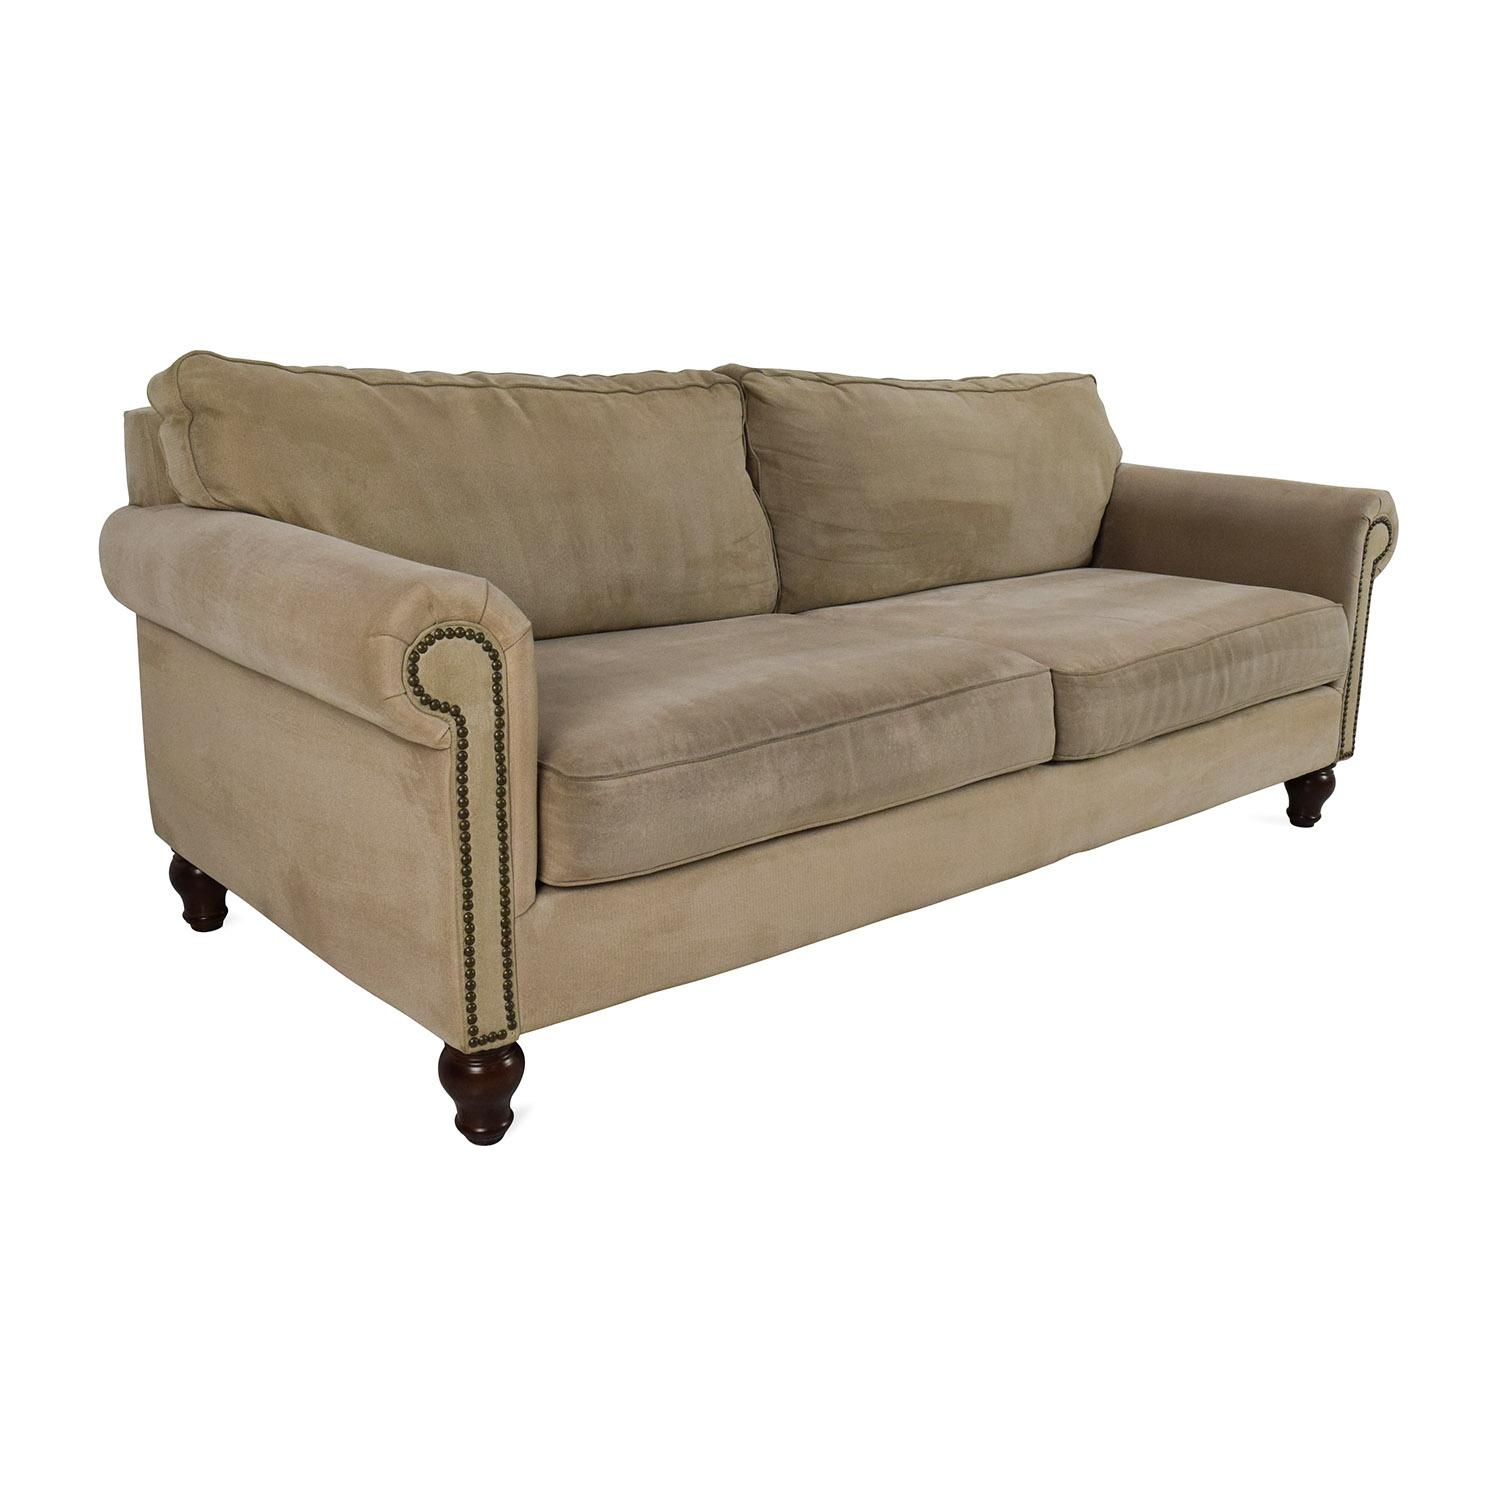 80% Off – Pier 1 Imports Pier 1 Alton Rolled Arm Sofa / Sofas With Pier 1 Sofas (Image 8 of 20)